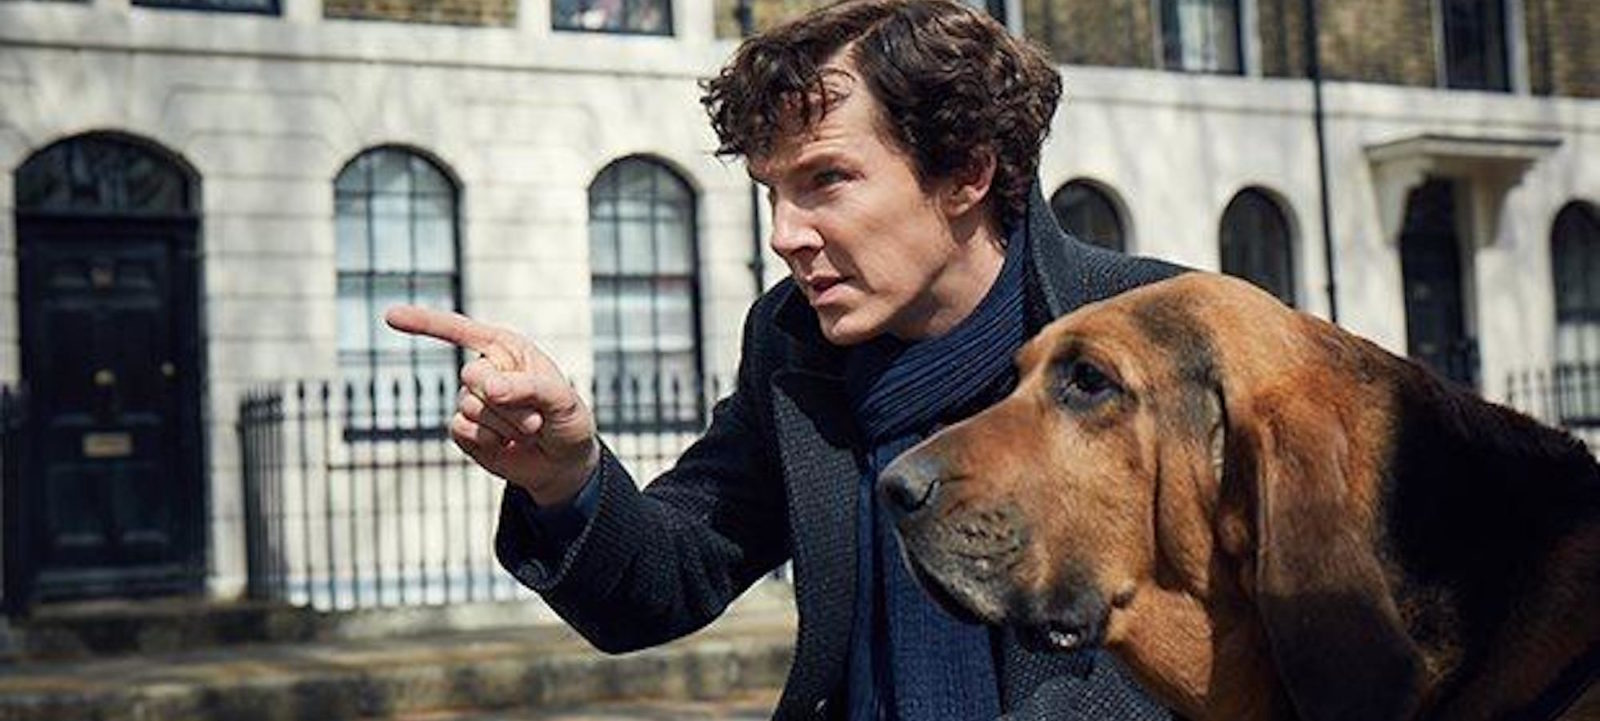 Benedict Cumberbatch in season 4 of 'Sherlock'